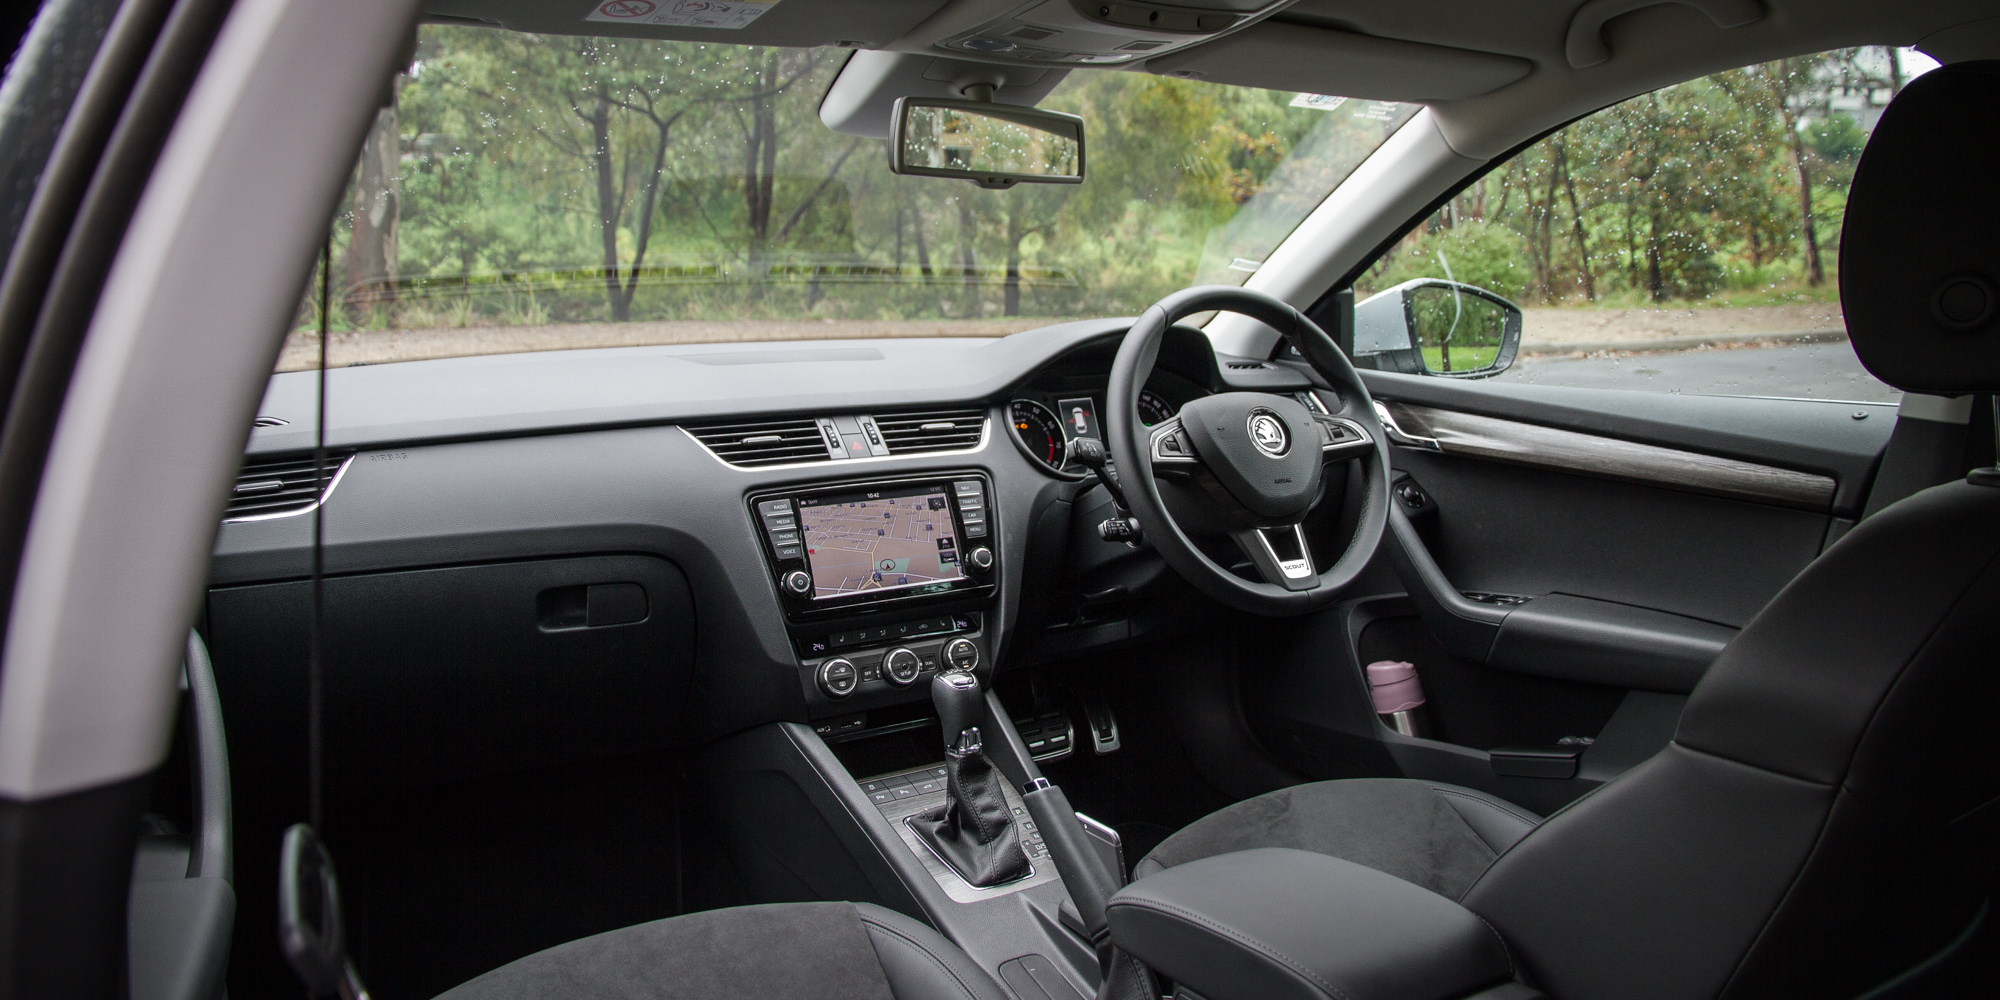 2016 Skoda Octavia Scout Interior (Photo 10 of 23)